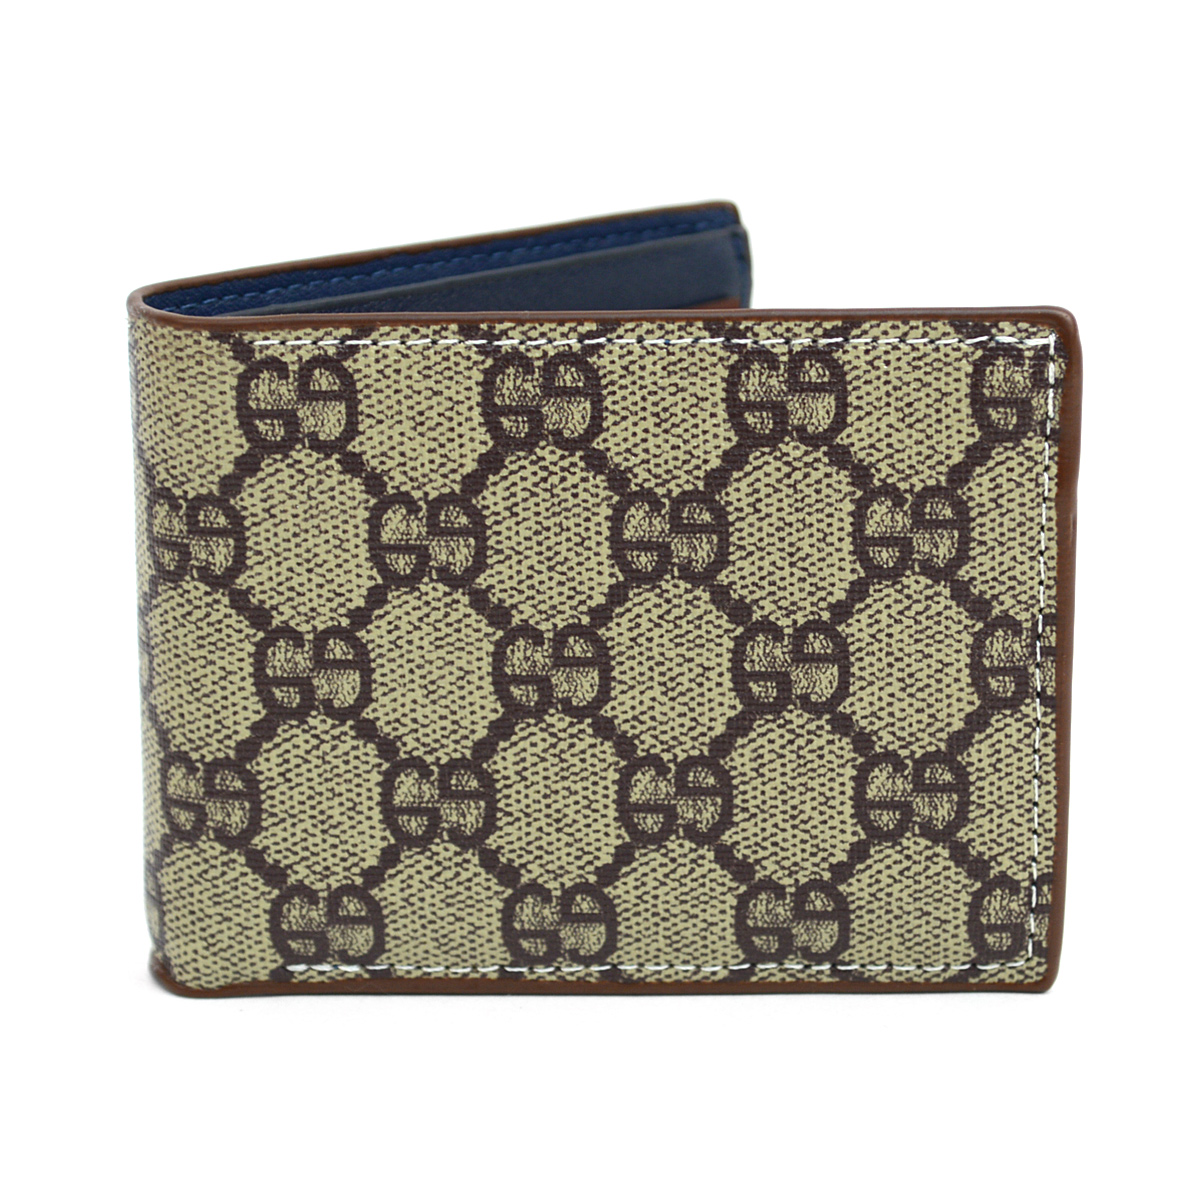 Bi-Fold Designer-Print LEATHER Wallet MLW5182